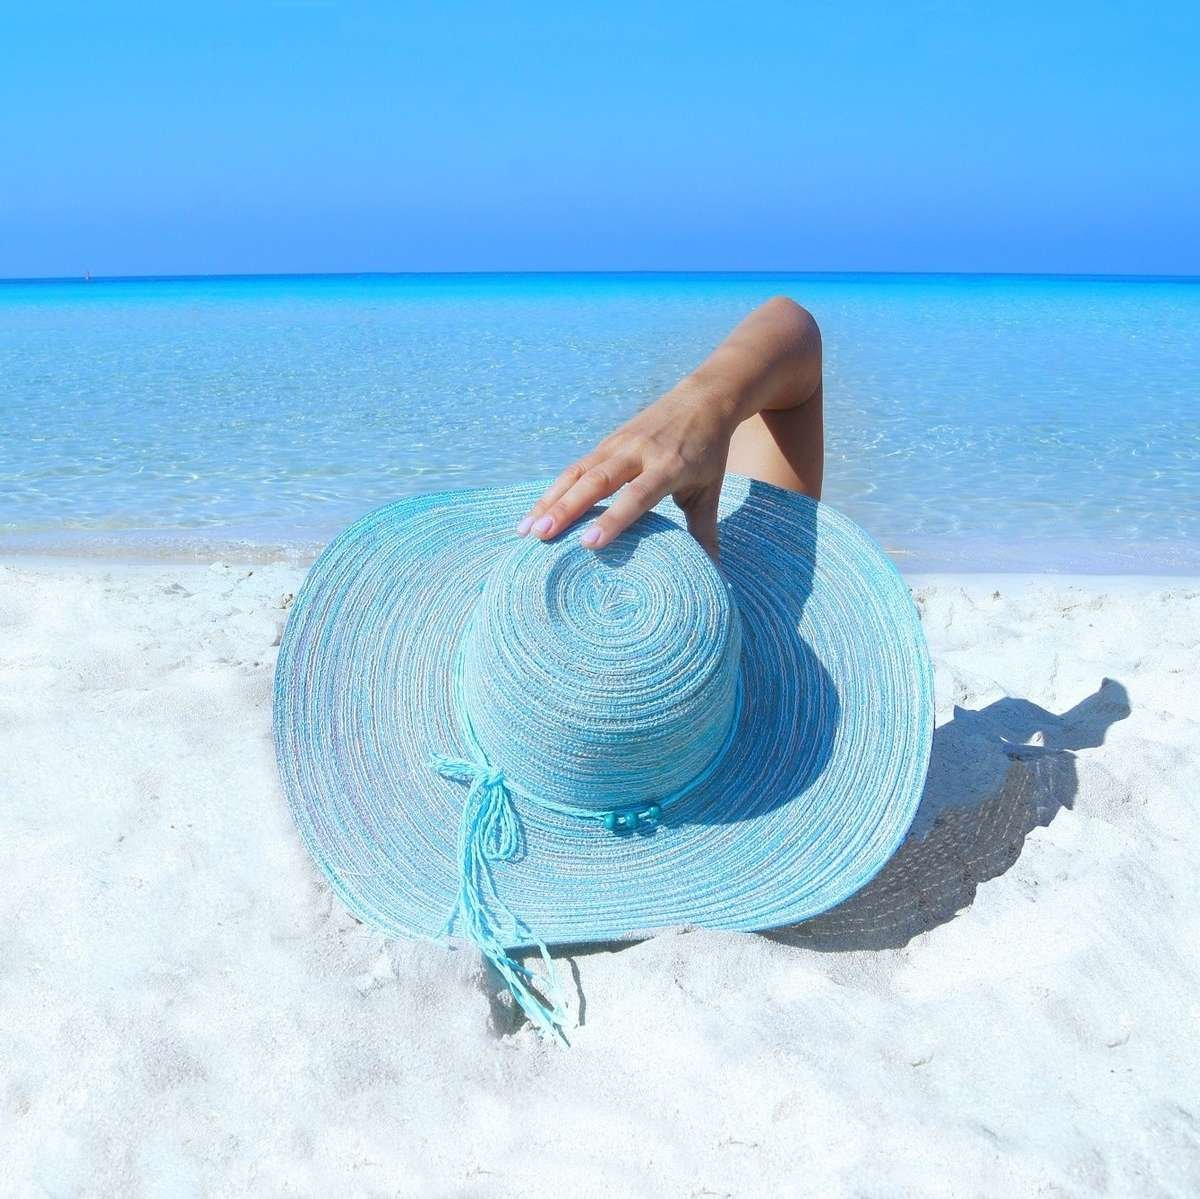 Driftwood fragrance scent persona beach hat.